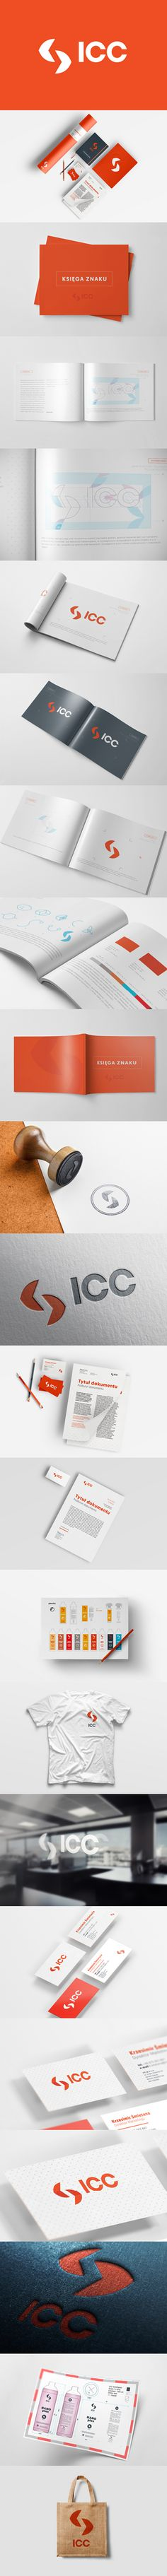 ICC Branding. See full creation!